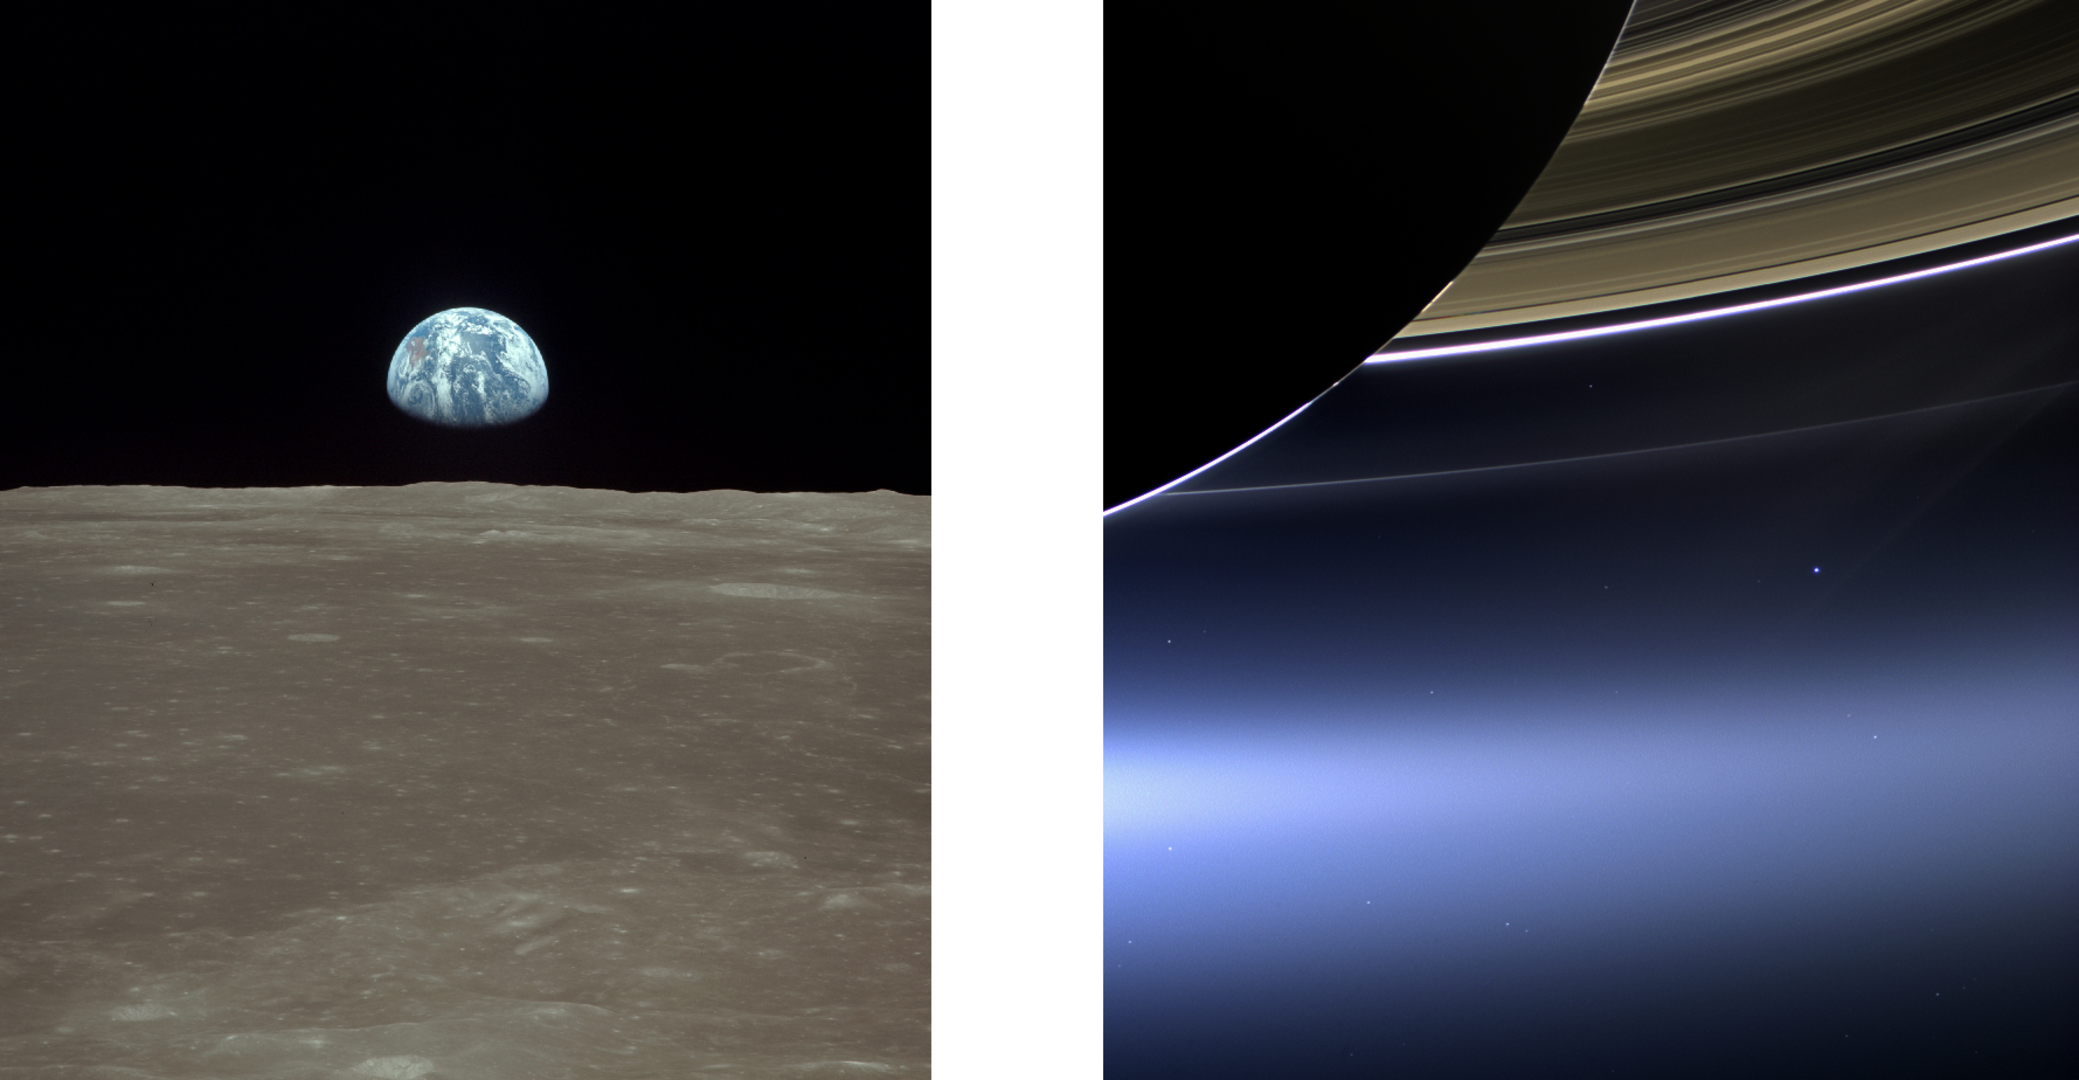 Earth seen from NASA's Apollo 11 and ESA's Cassini